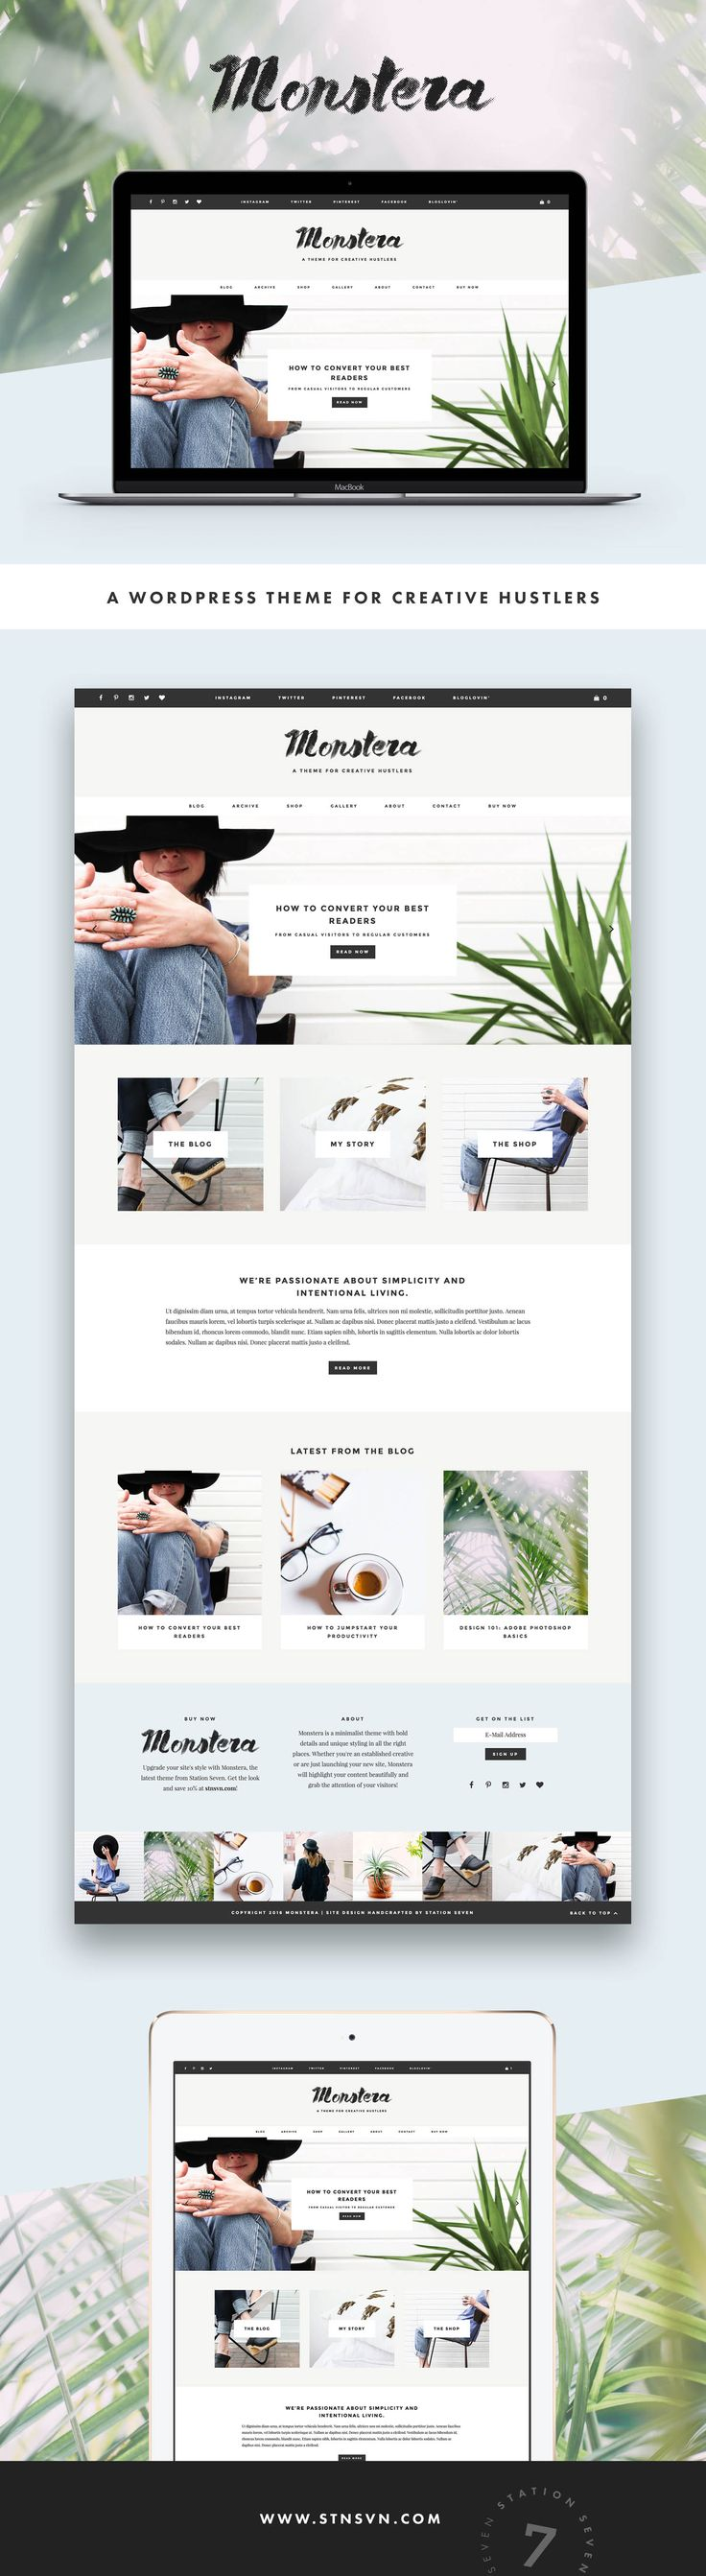 love this blog theme - perfect for infopreneurs or bloggers! minimal blog design | website design | minimal blog themes| blog design for creatives | wordpress themes for beginner bloggers (aff link)